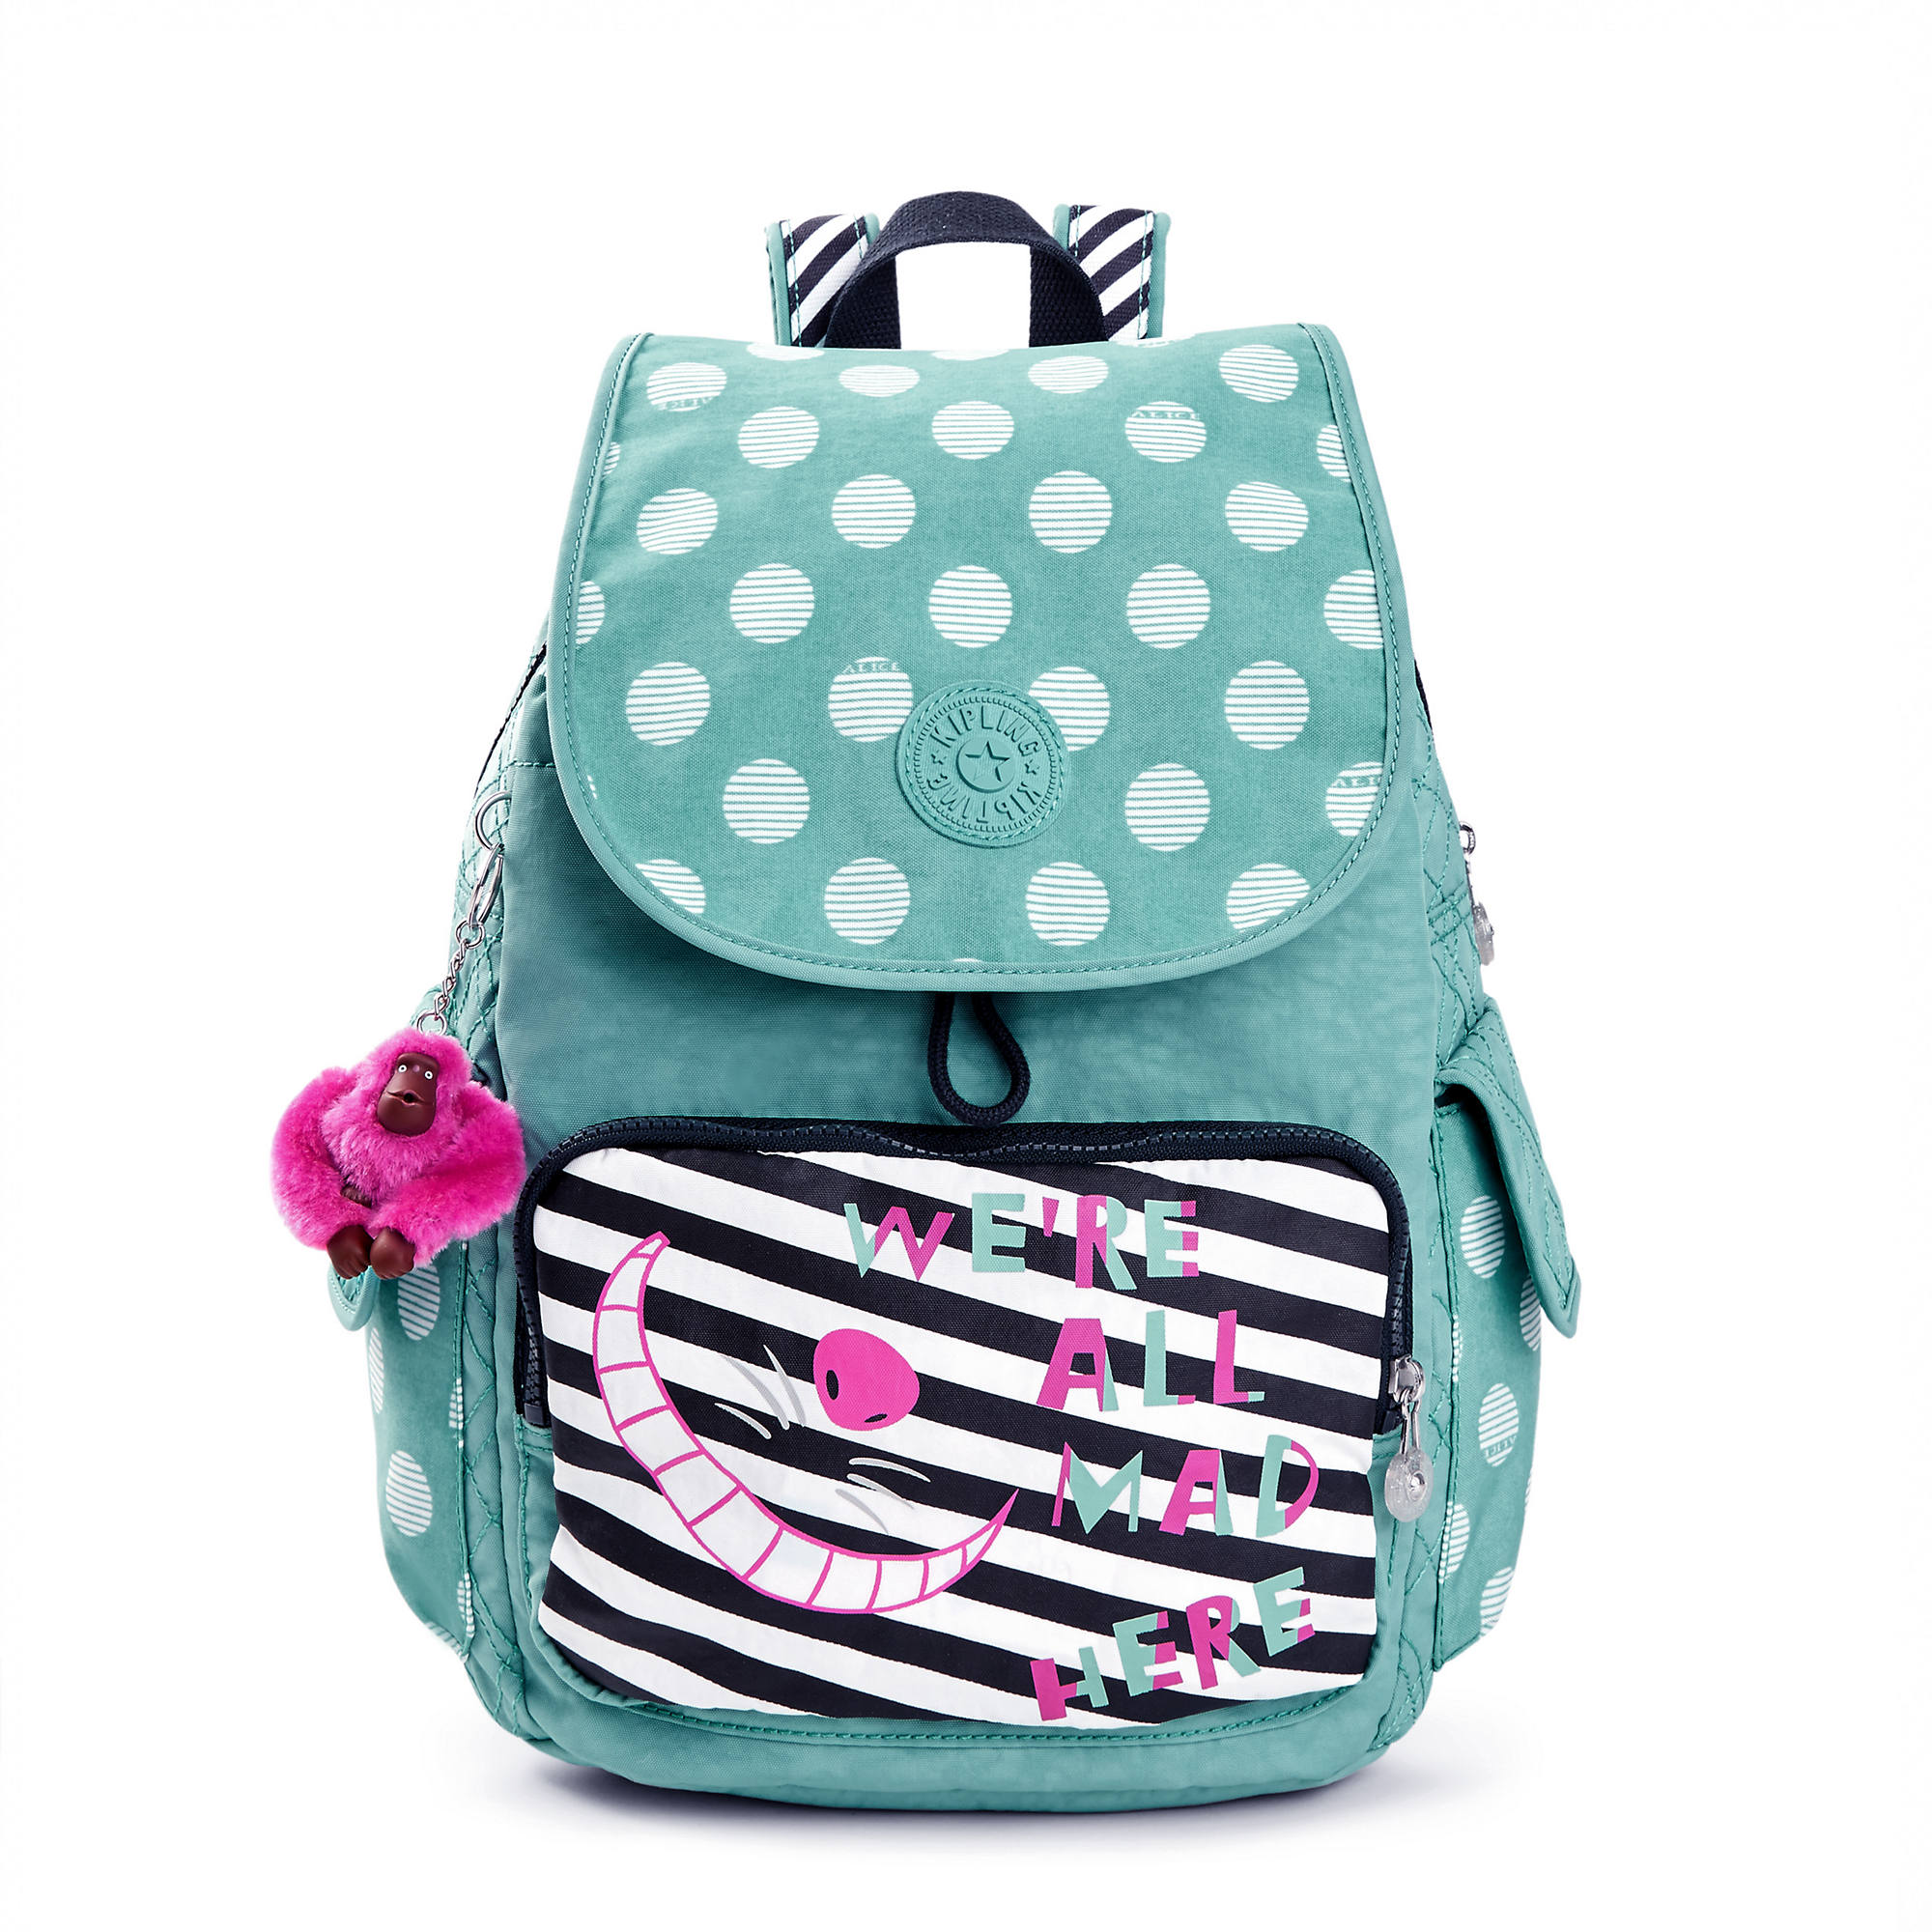 City Pack Disney's Alice in Wonderland Printed Backpack